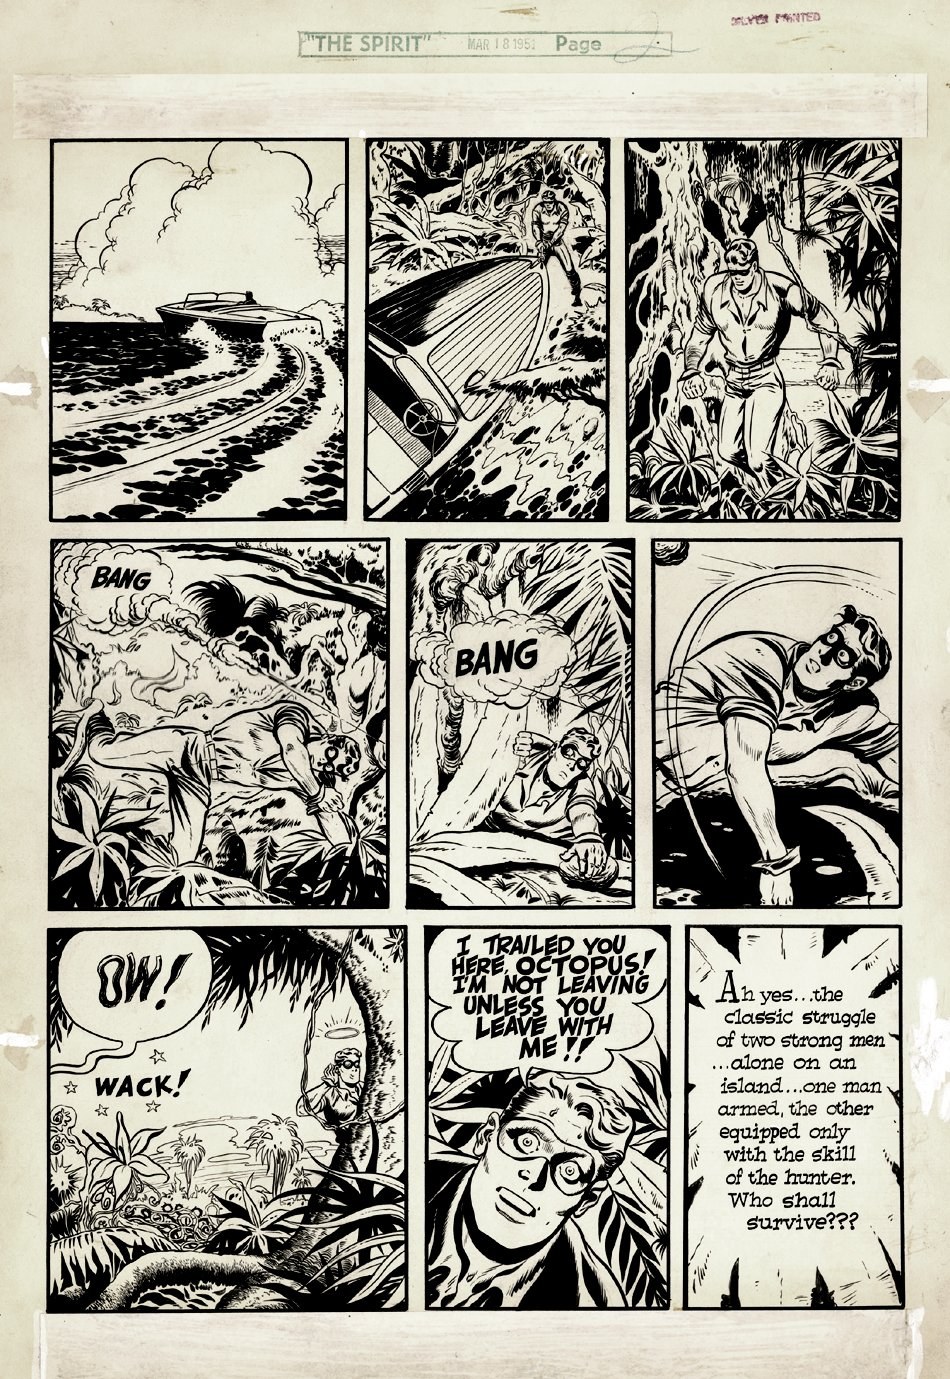 The Spirit Sunday Section Page 2 (Large Art) 3/18/1951